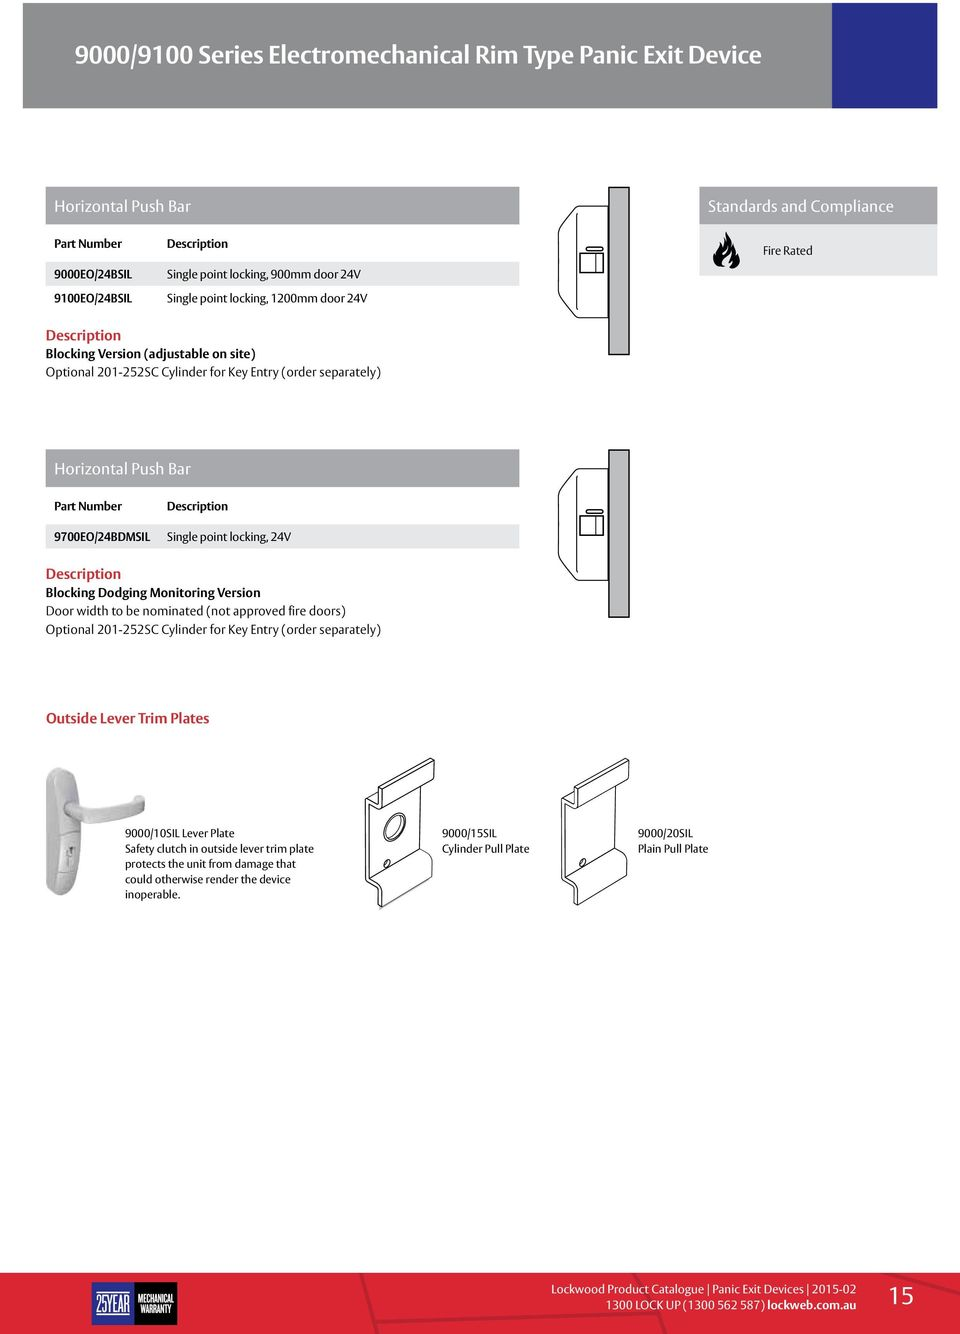 locking, 24V Blocking Dodging Monitoring Version Door width to be nominated (not approved fire doors) Optional 201-252SC Cylinder for Key Entry (order separately) Outside Lever Trim Plates